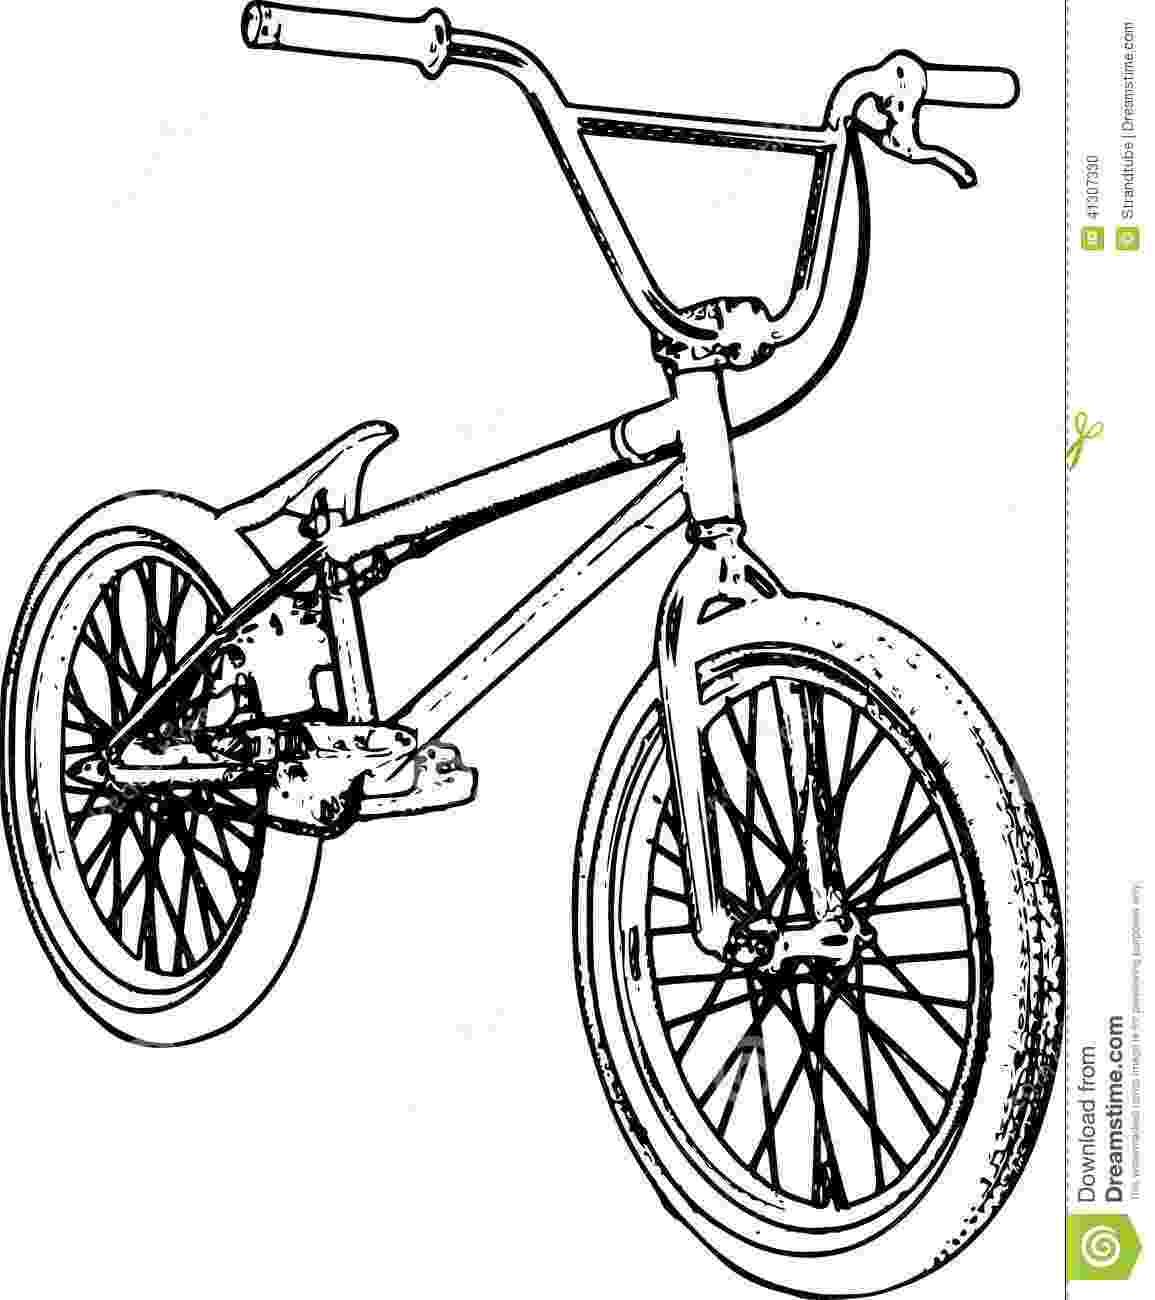 bmx bike coloring pages olympic colouring page bmx bike bmx bikes coloring bike bmx pages coloring